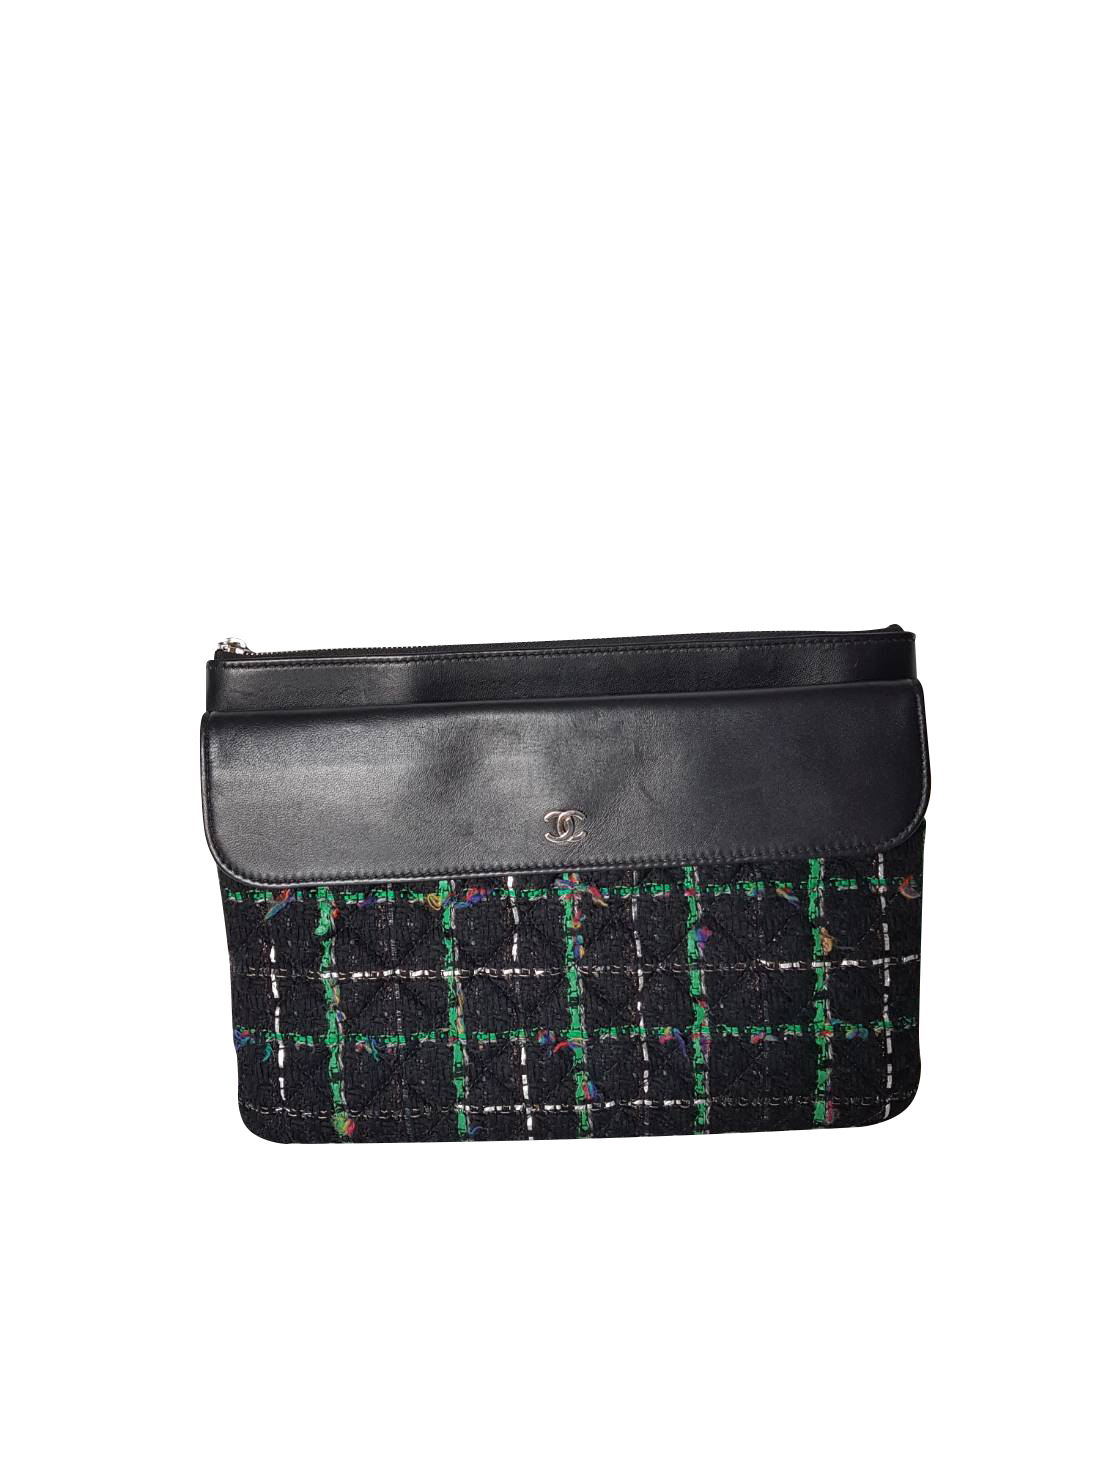 140dcd91b9b8c Chanel quilted black lambskin leather and green tweed